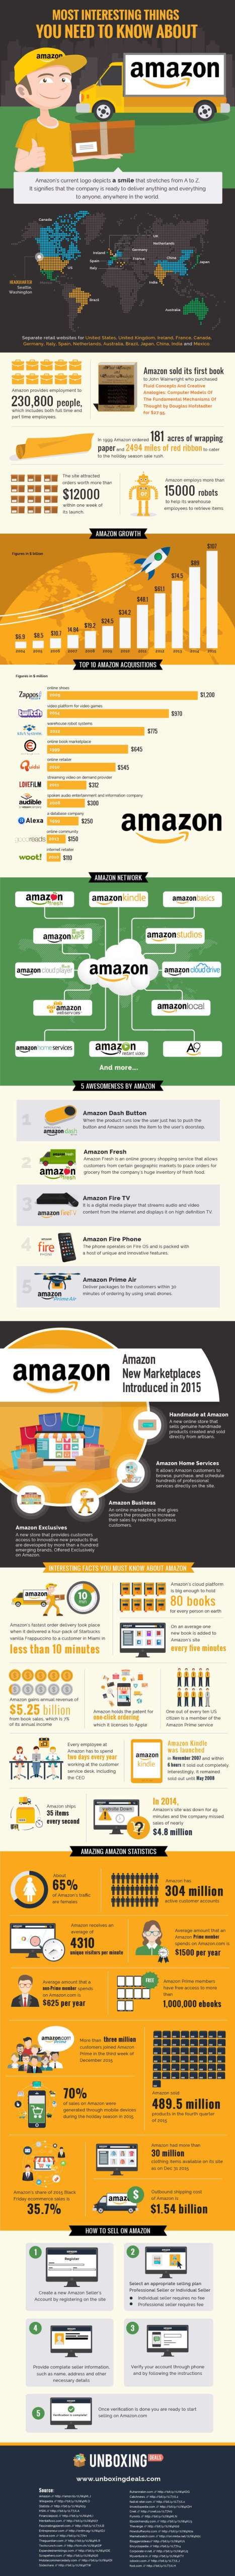 Amazon-facts-and-figures-full-infographic